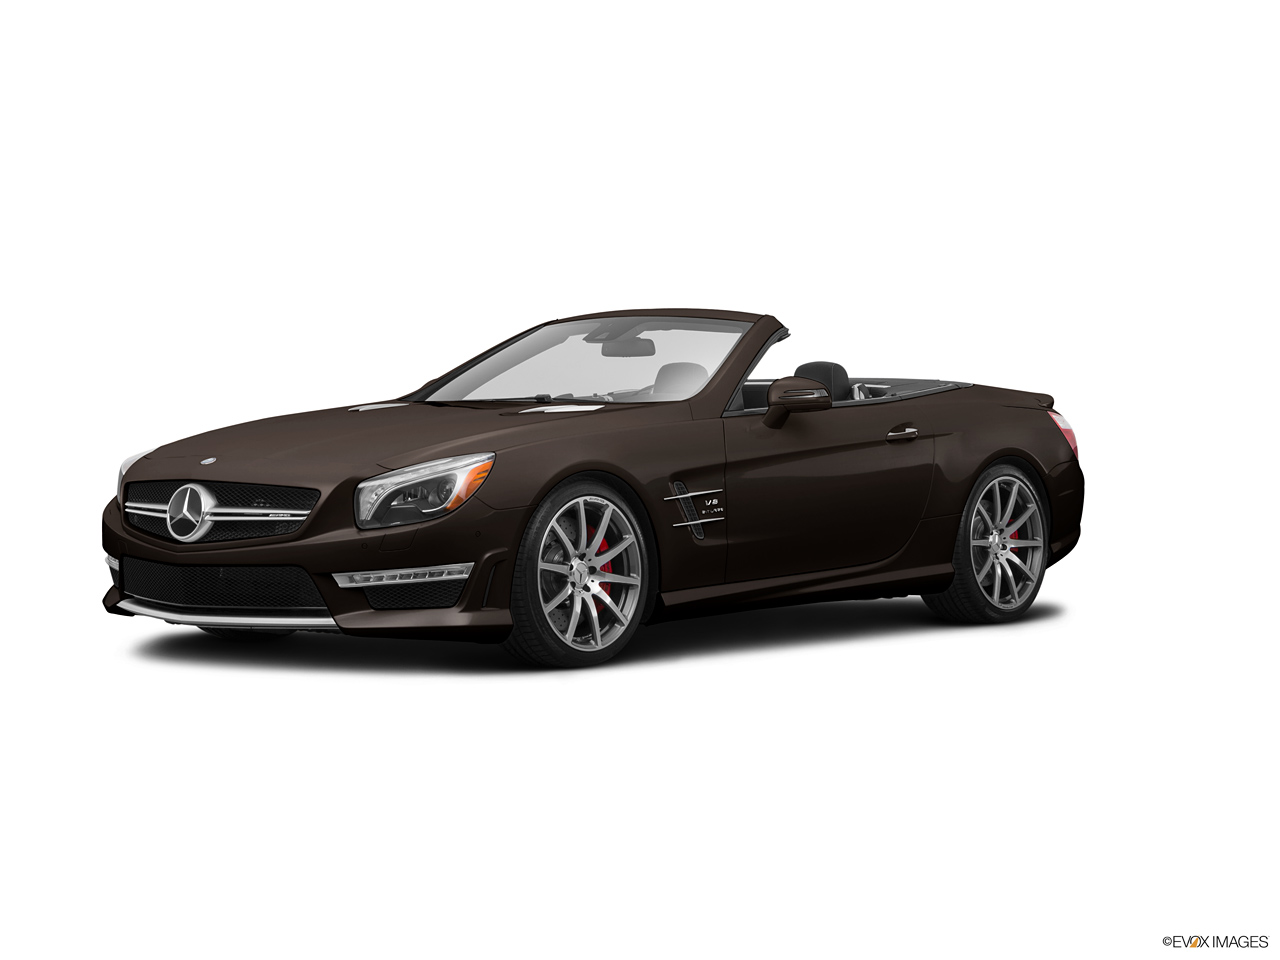 Car pictures list for mercedes benz sl 63 amg 2016 5 5 for Mercedes benz insurance